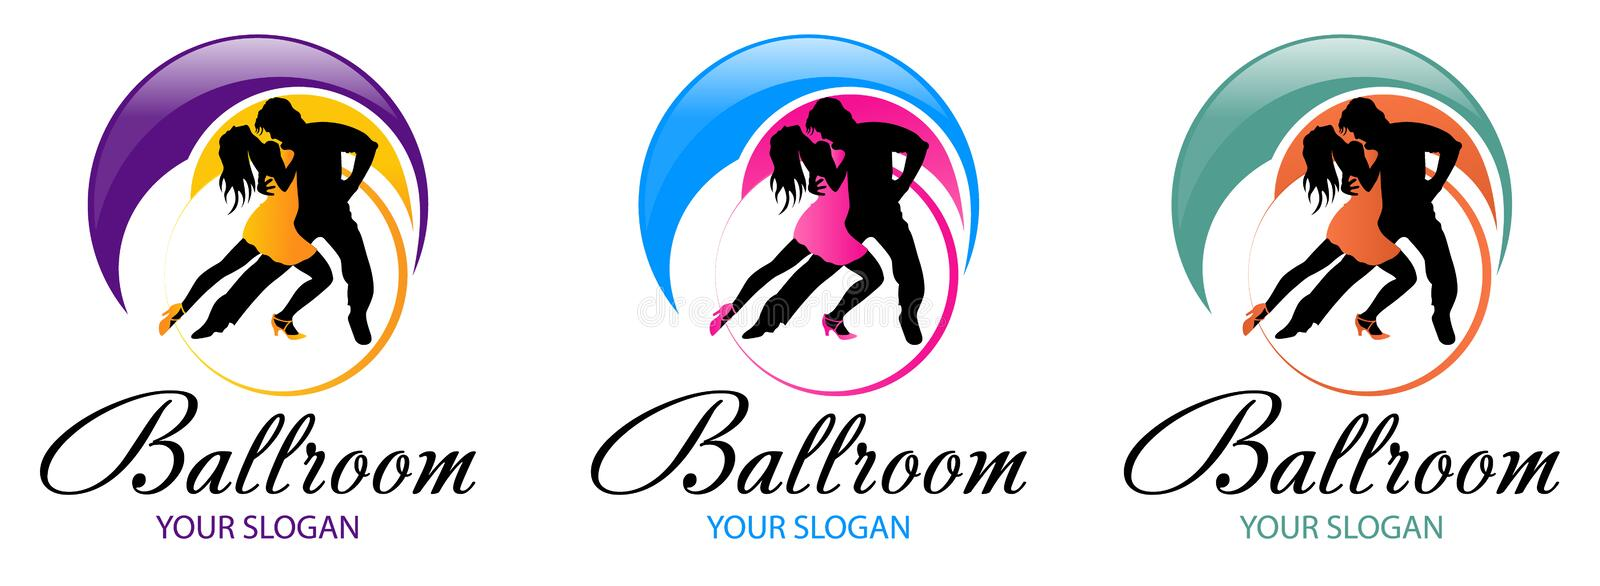 Silhouette of dancing couple. Dance logo designs template. Elements of dance multi colored icons. Simple icon for websites, web de royalty free illustration